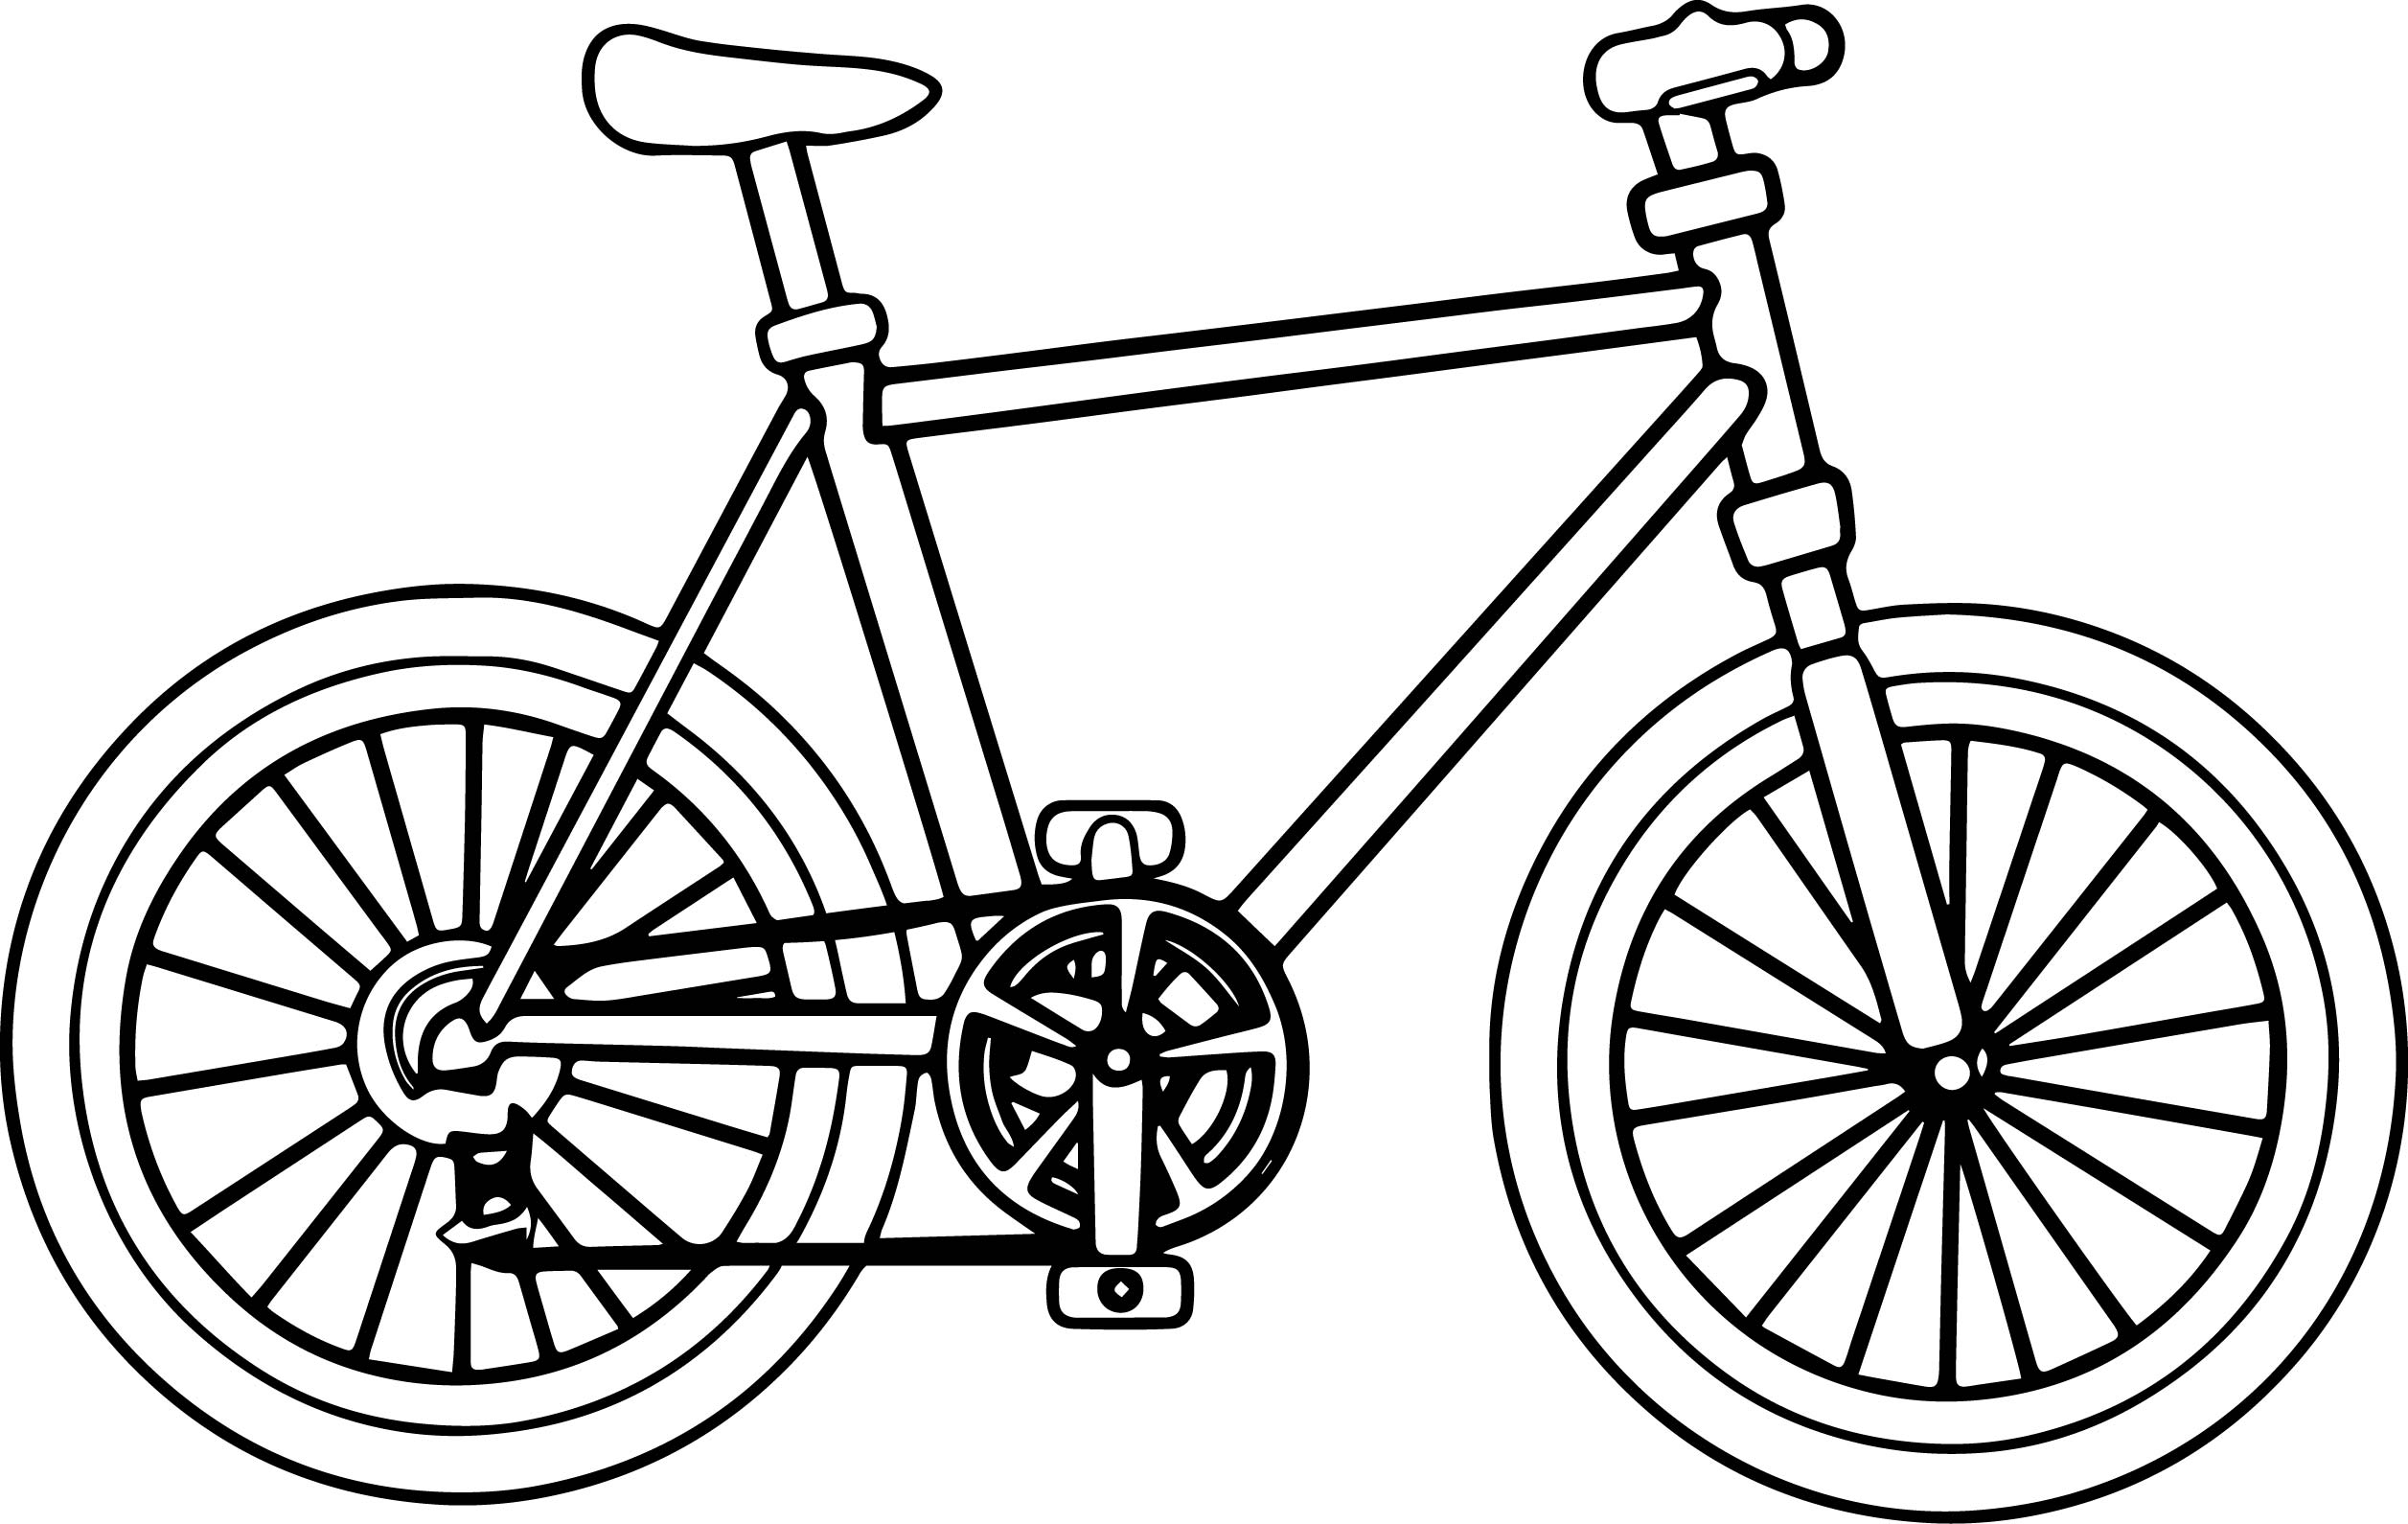 Big Bike Biycle Coloring Page